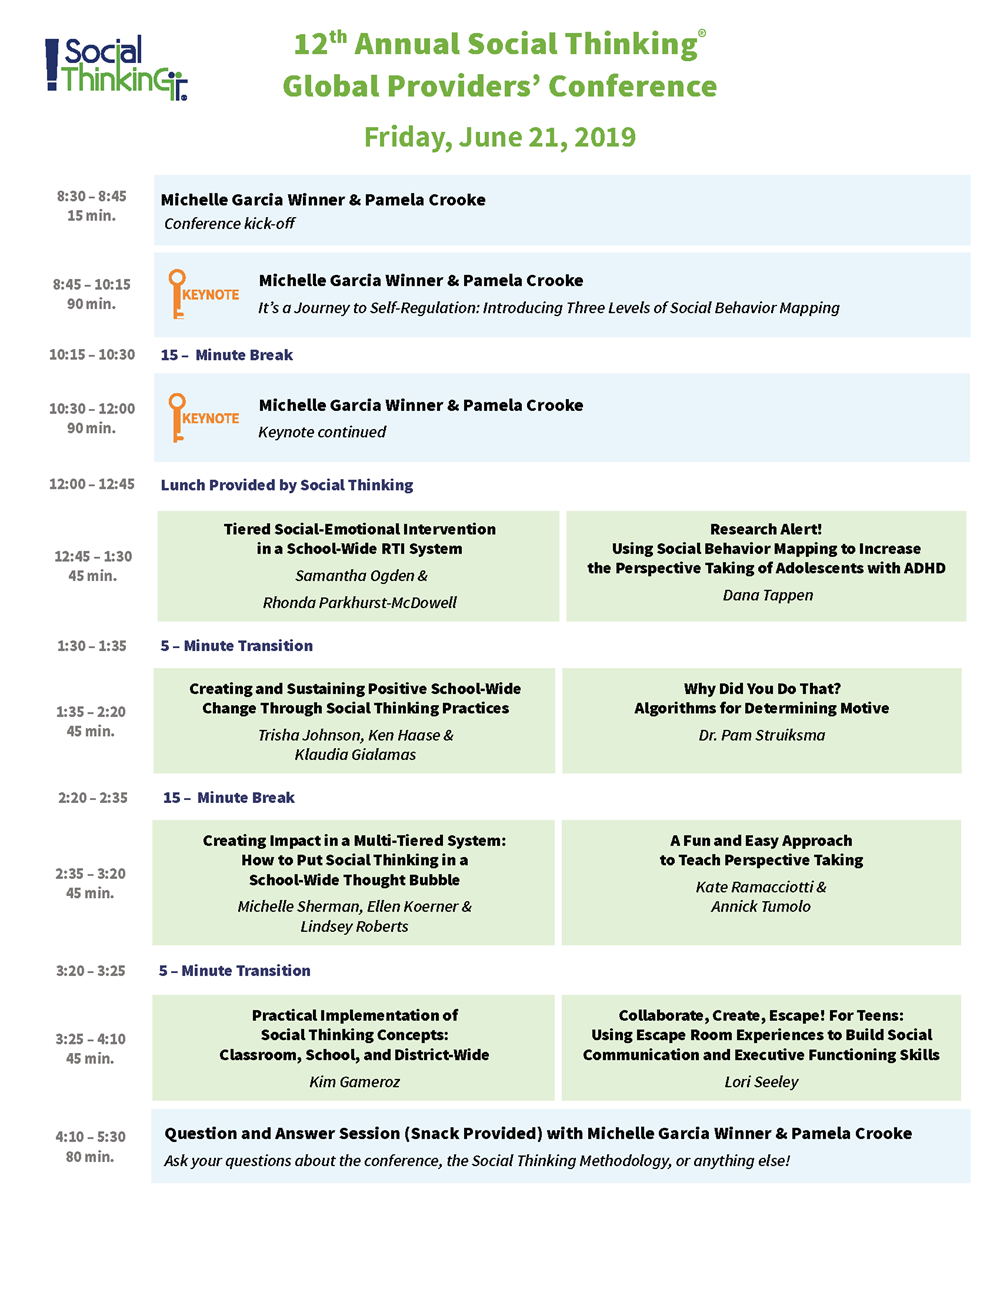 Social Thinking Providers Conference Friday, June 21st 2019 Schedule